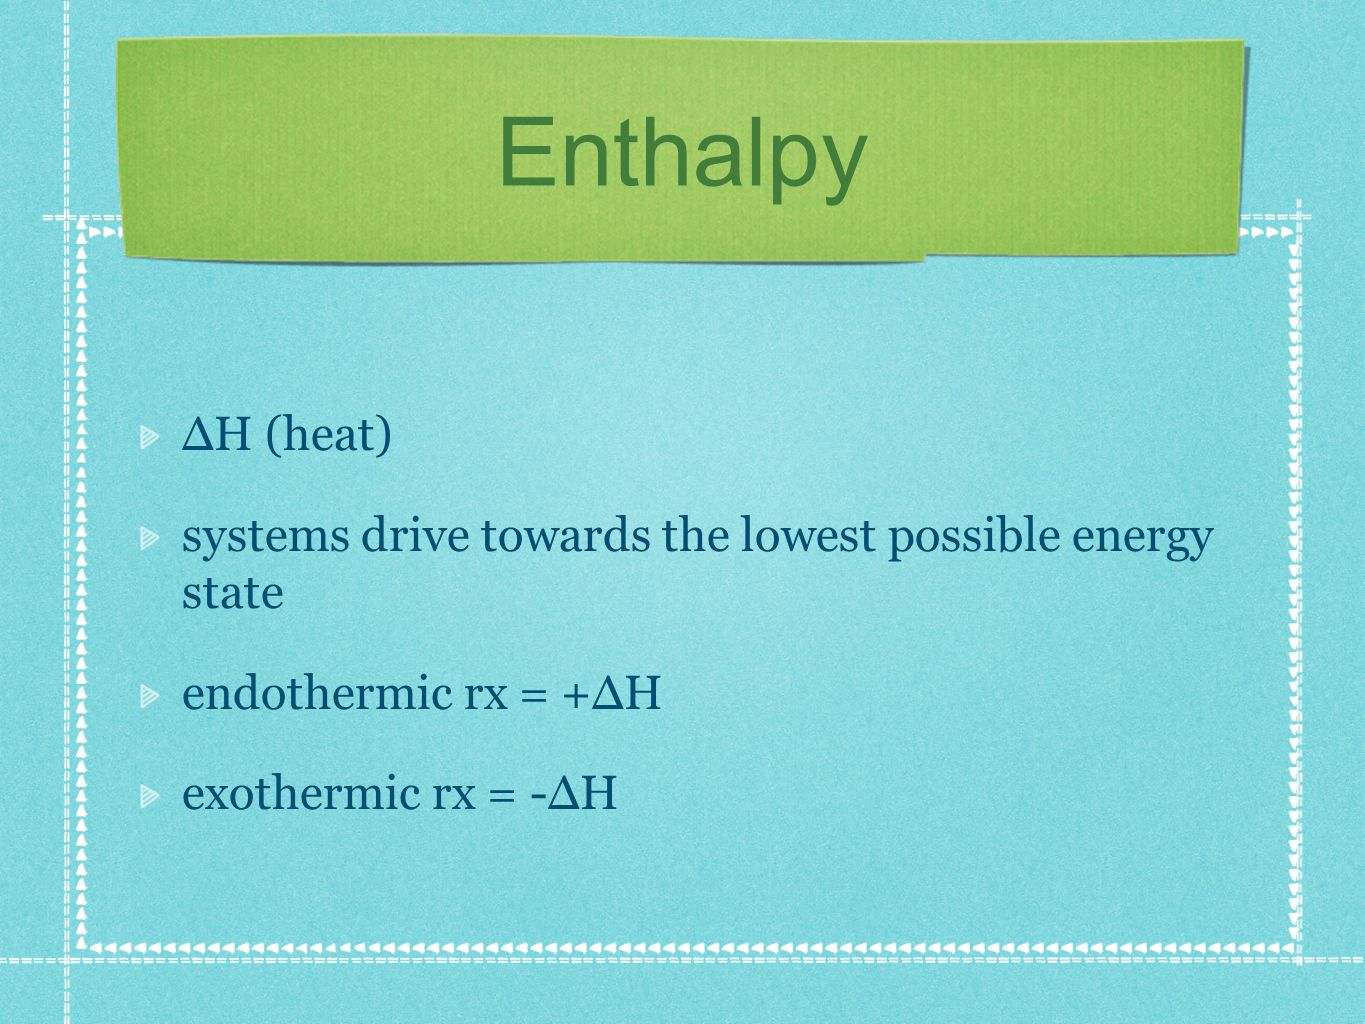 Enthalpy H (heat) systems drive towards the lowest possible energy state endothermic rx = +H exothermic rx = -H